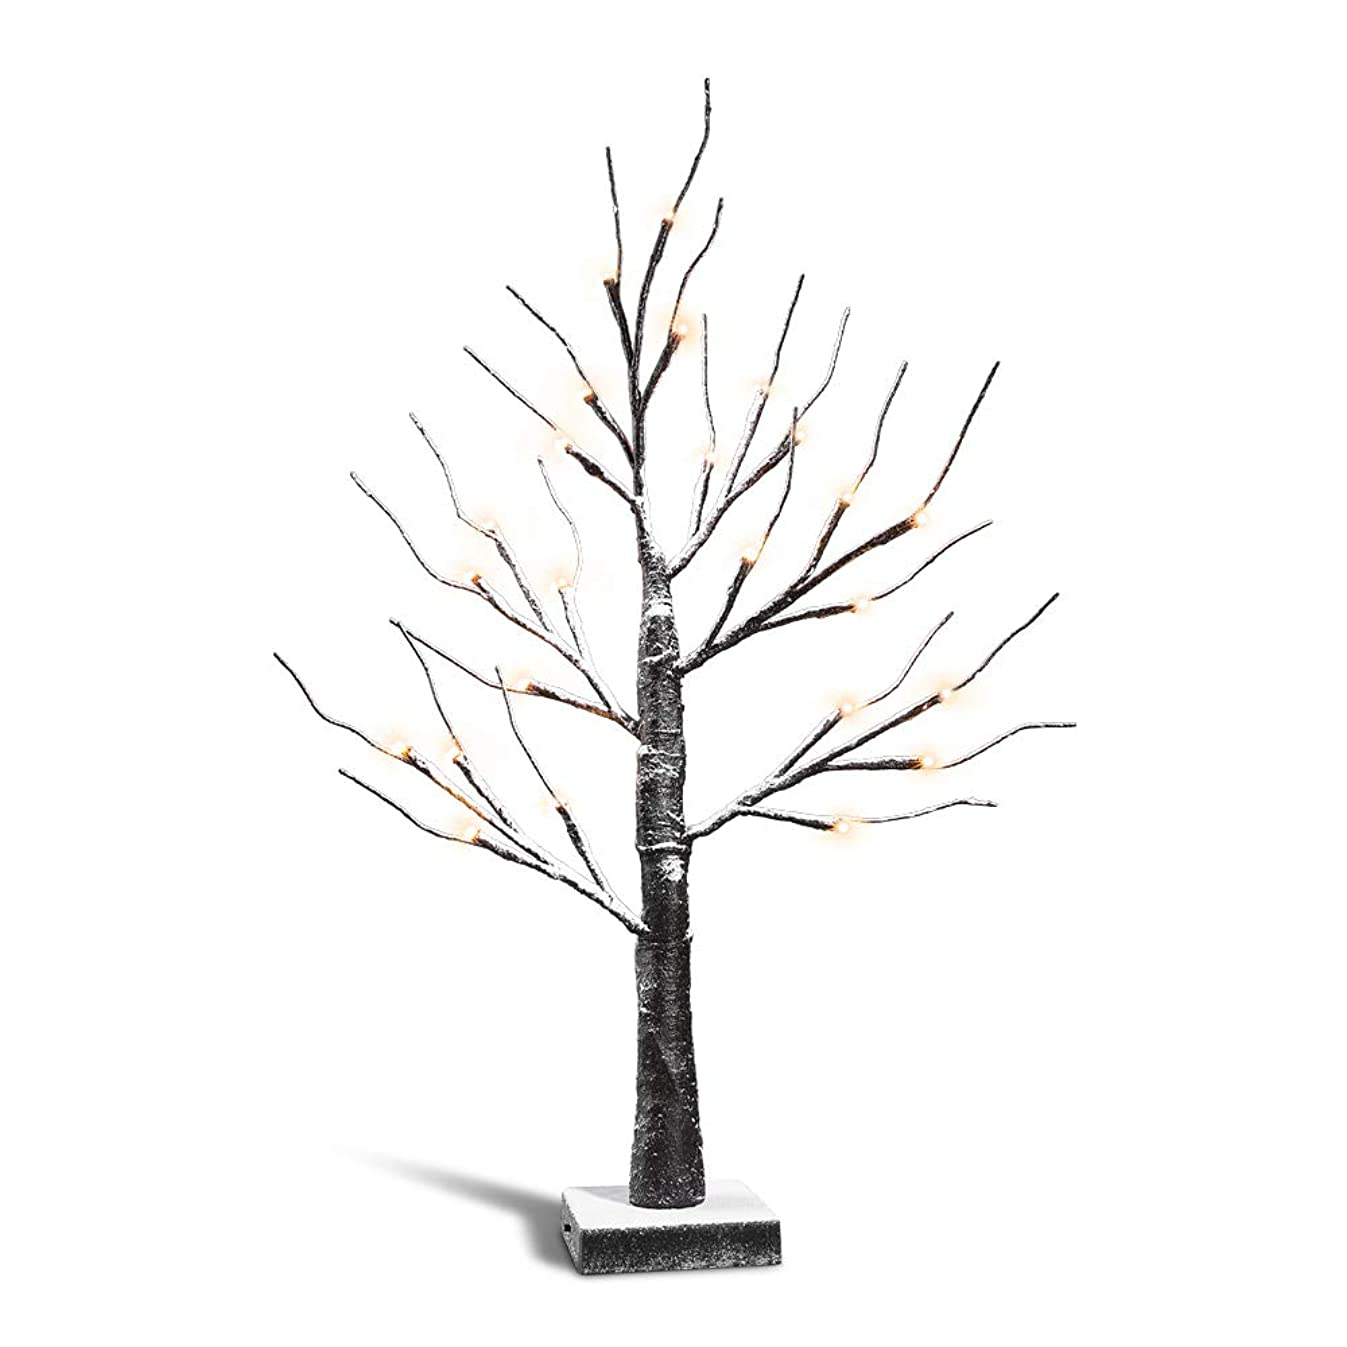 Zanflare Snow Birch Tree Lights, 0.6M/23.6 Inch 24 LEDs Battery Operated Desk Tree Light, Warm White Bonsai Tree Light, Birch Twig Tree for Christmas, New Year, Home, Party, Birthday, Wedding